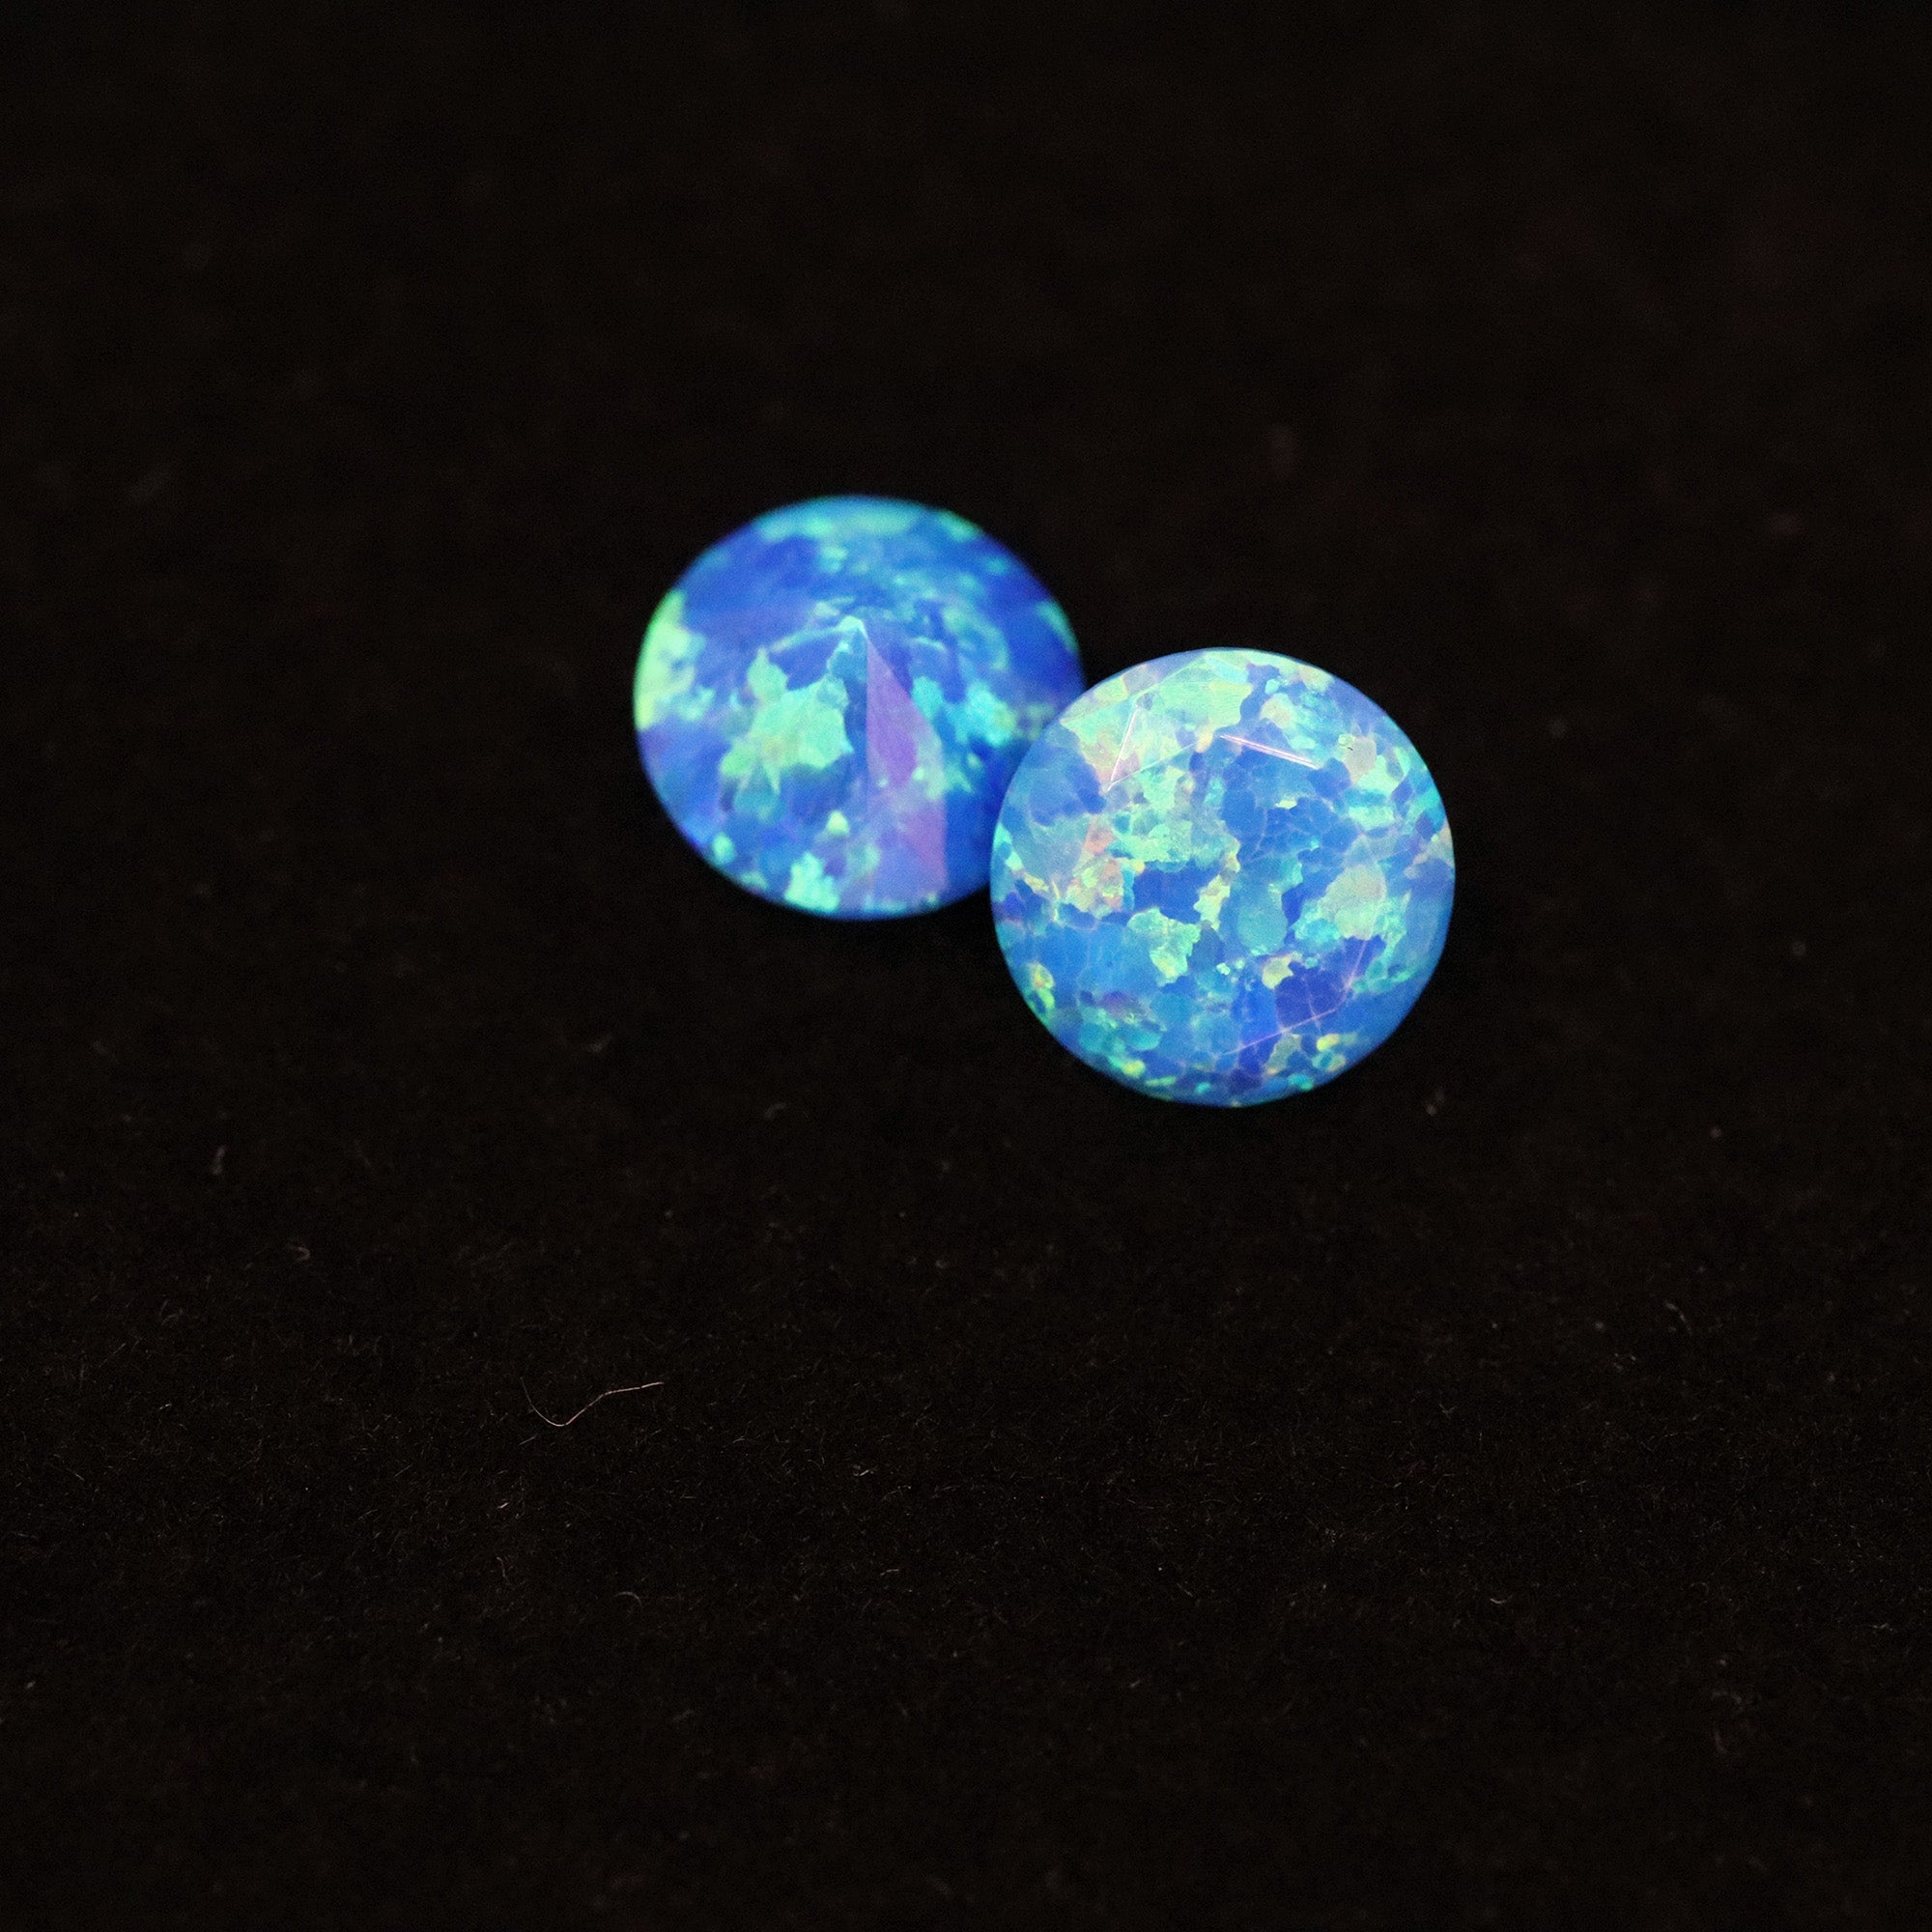 Pacific Sapphire Diamond Cut Faceted Opal Stones